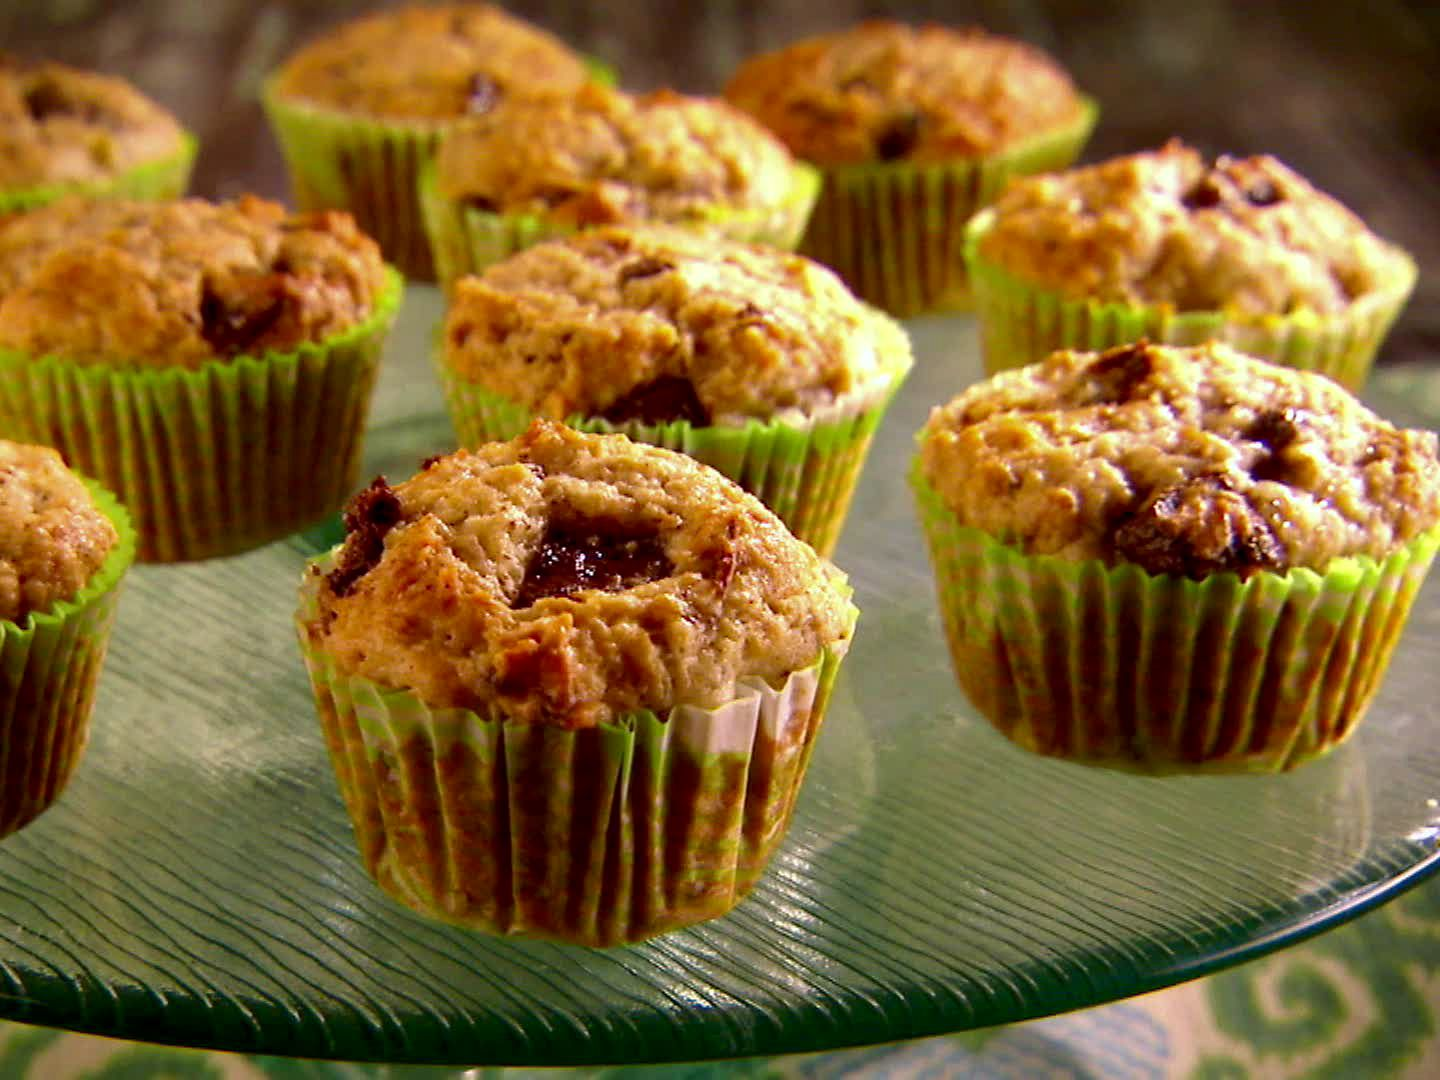 Mexican chocolate banana muffins recipe chocolate banana muffins chocolate chip banana bread mexican chocolate banana muffins recipe marcela valladolid food network forumfinder Images